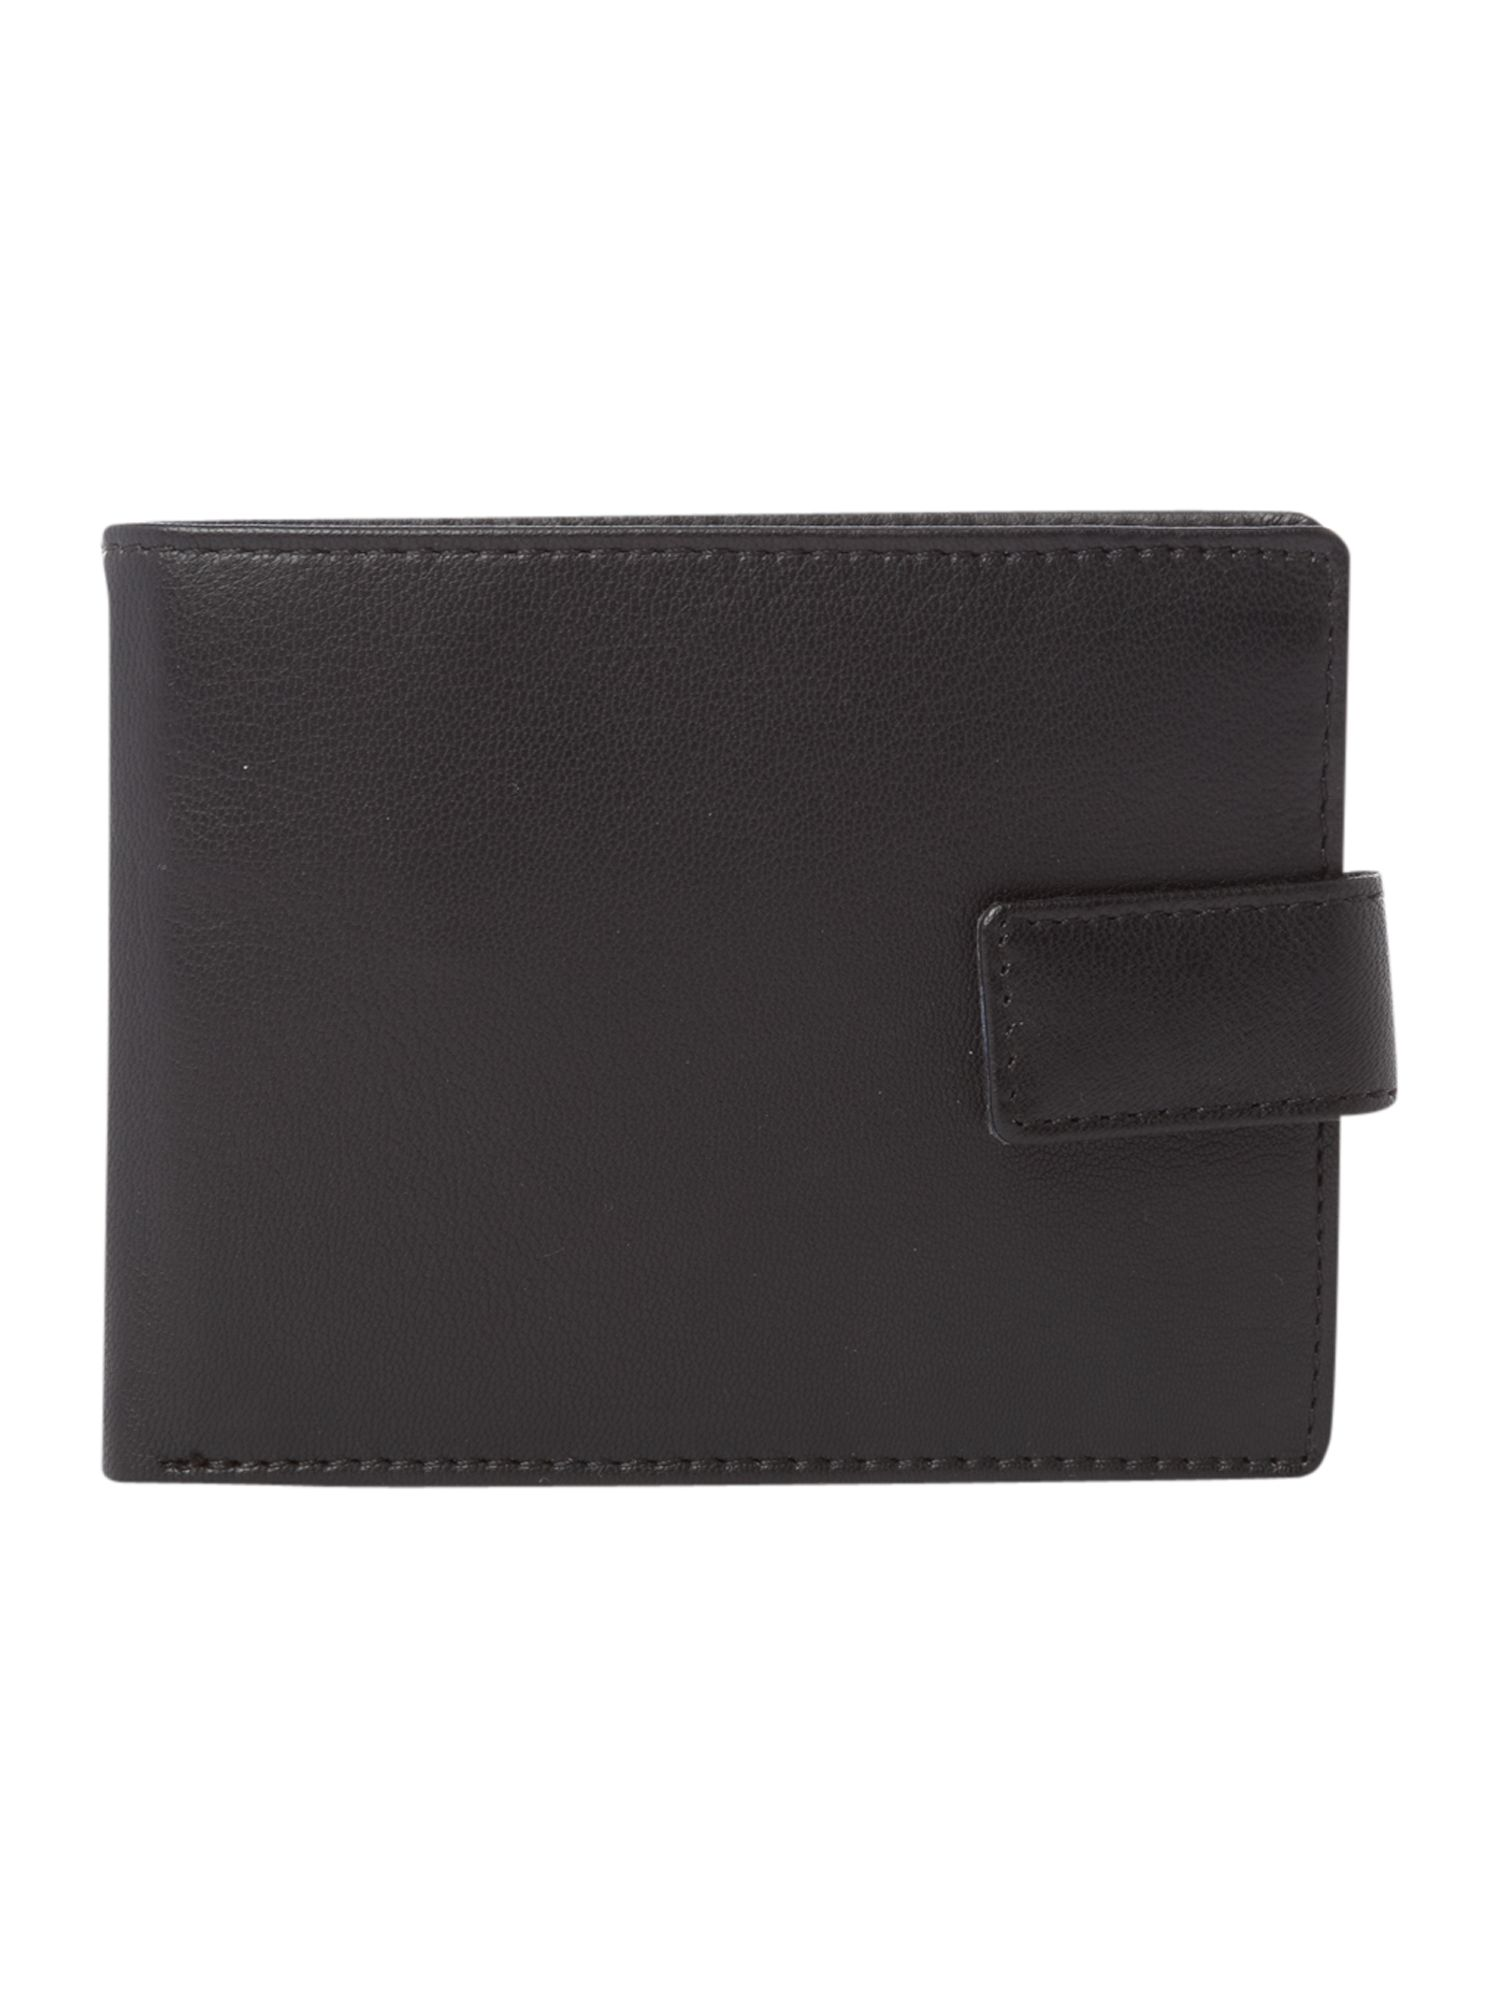 Linea smart trifold wallet